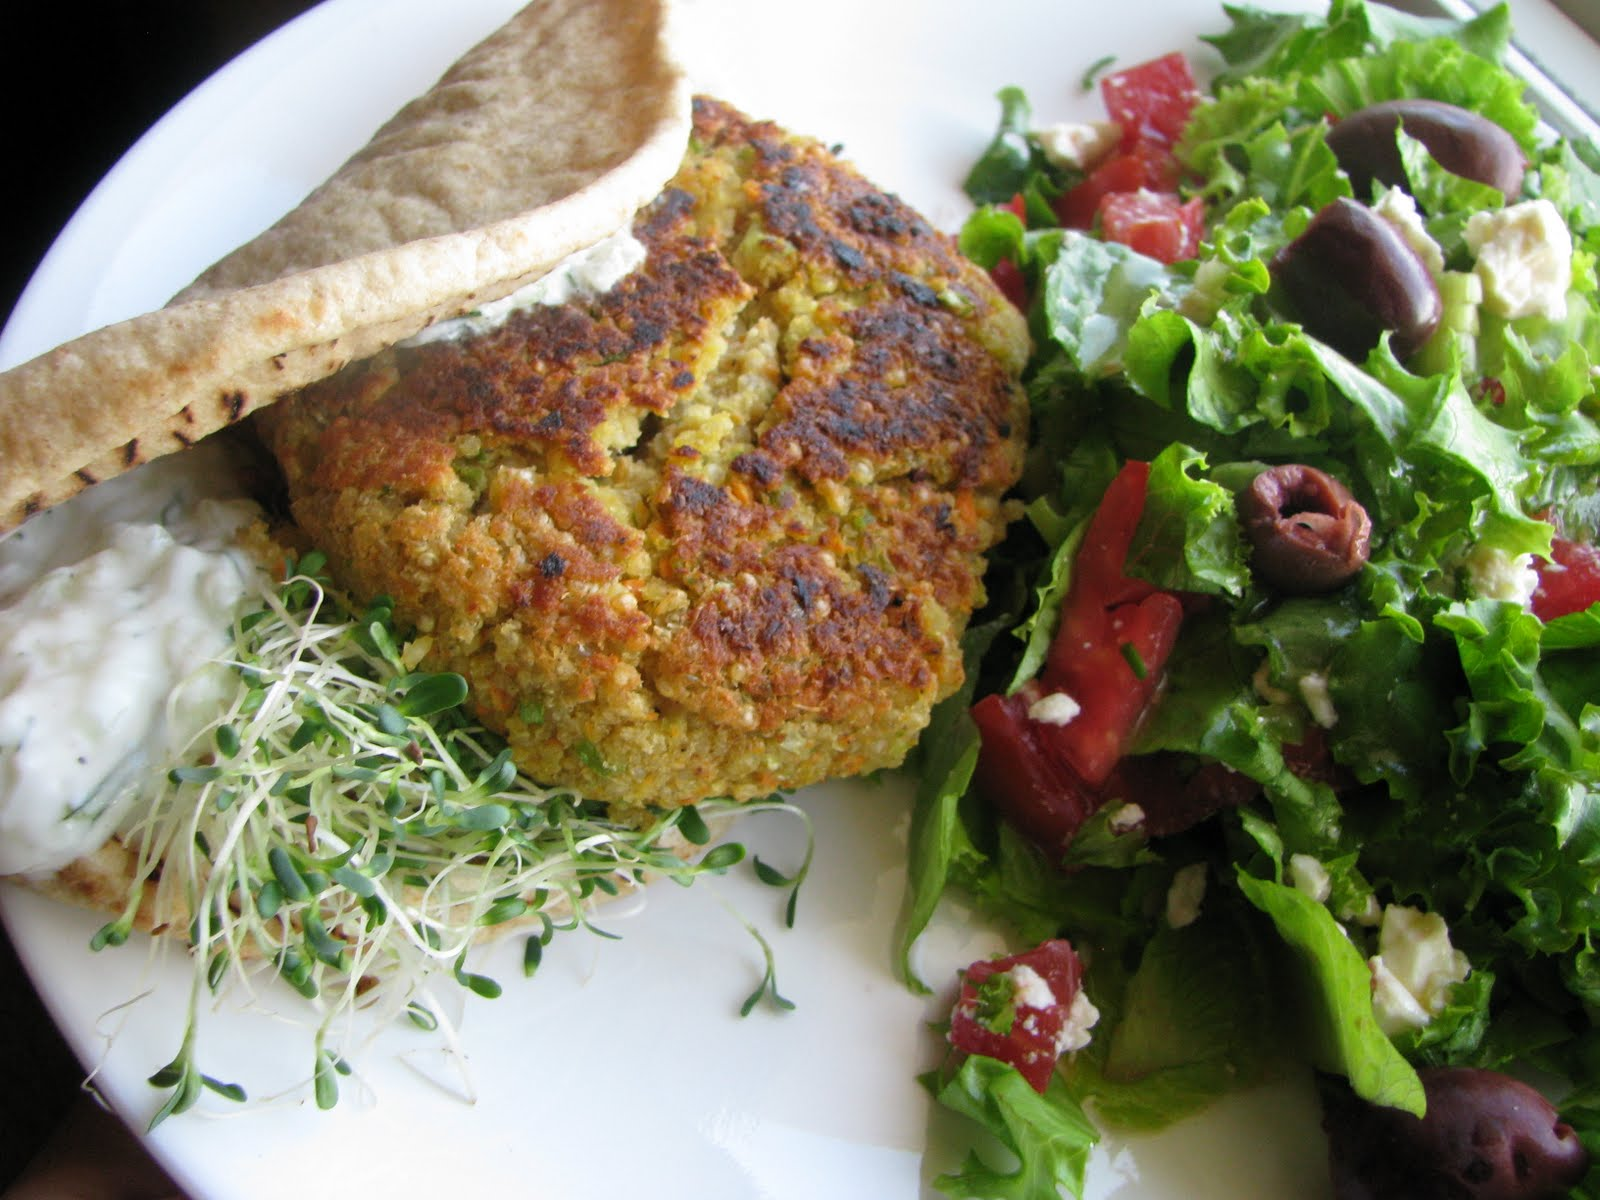 Busy Little Kitchen: Greek-Style Quinoa Burgers